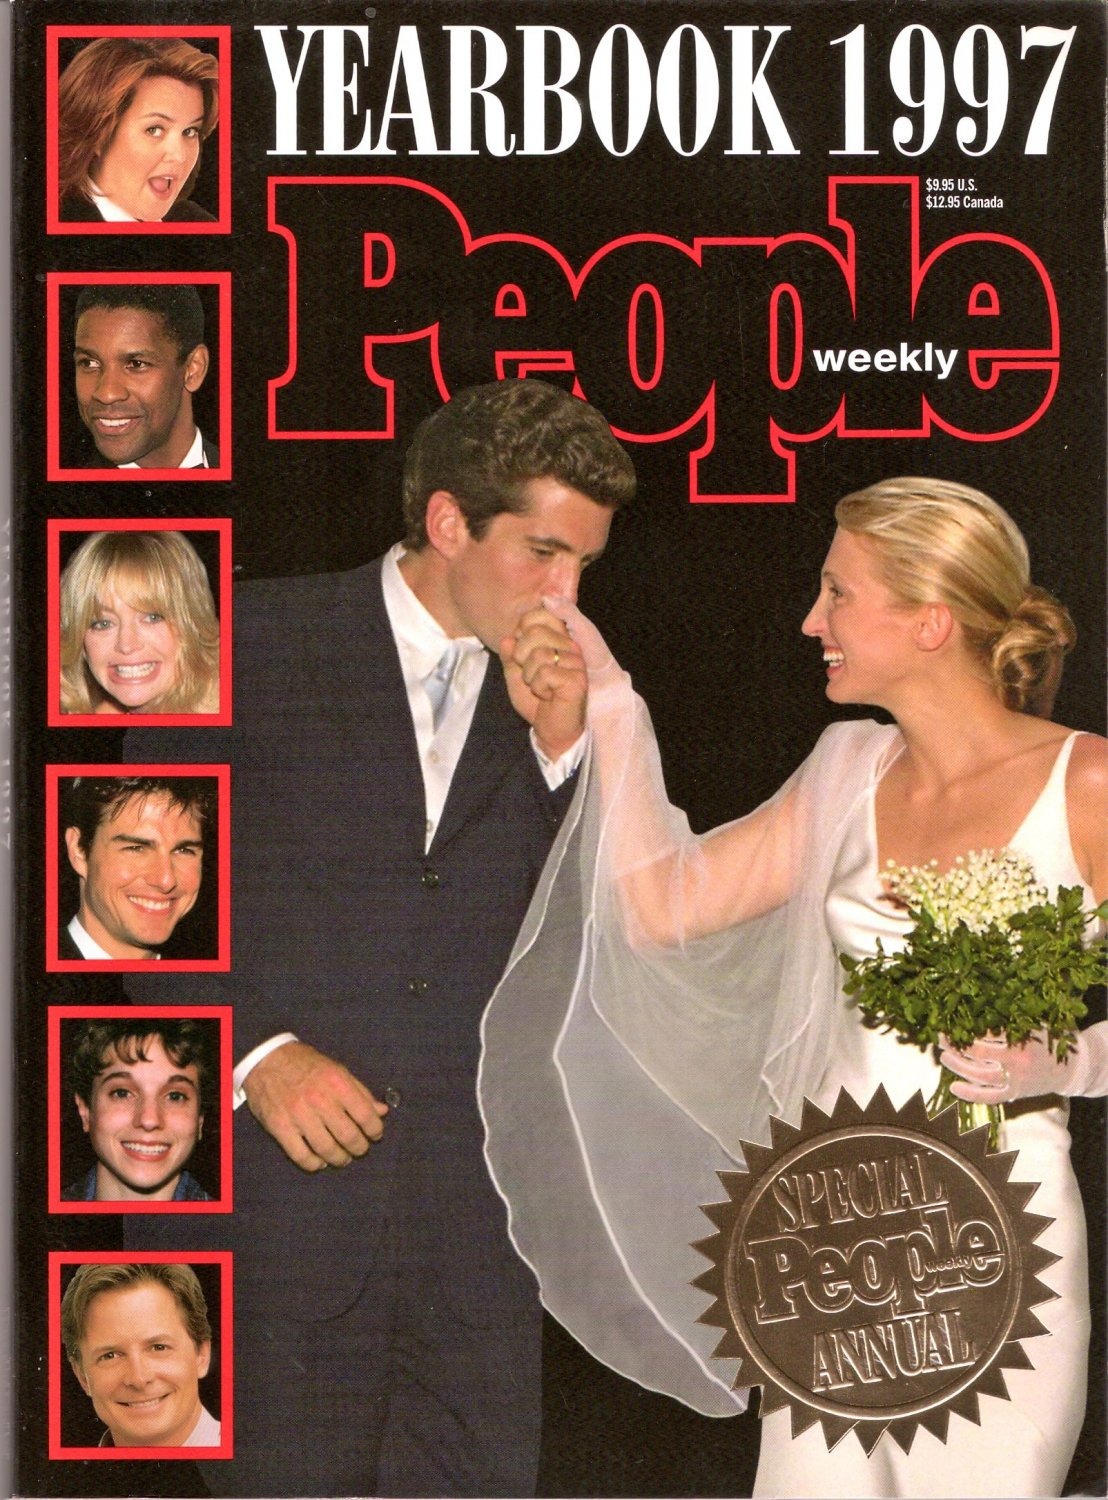 1996 in Review People Weekly Yearbook 1997